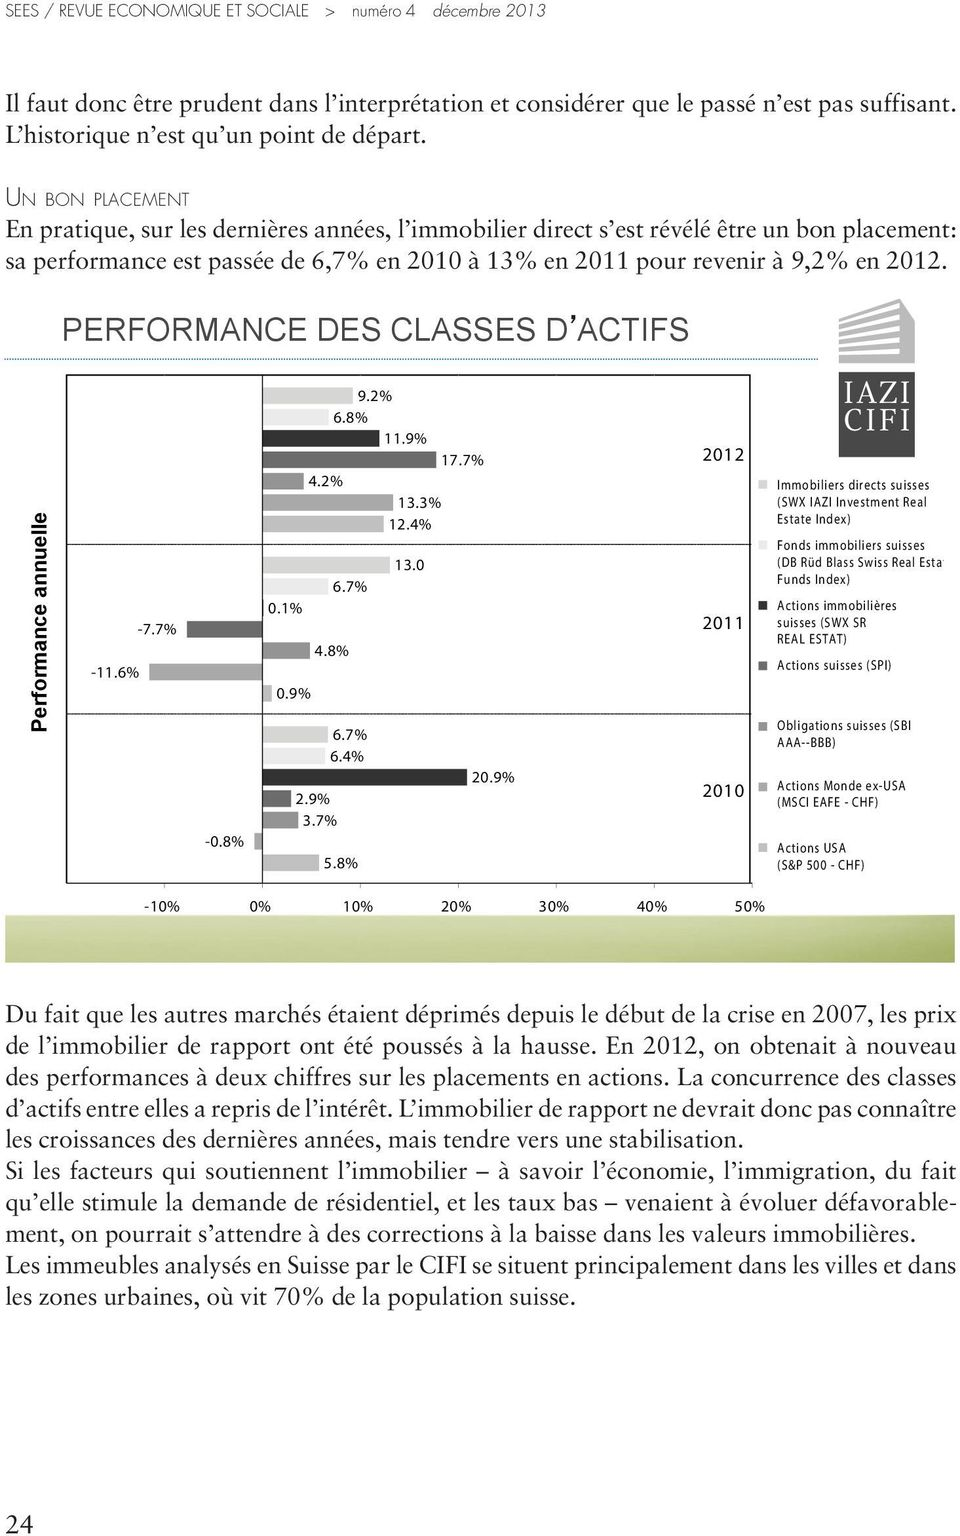 PERFORMANCE DES CLASSES D ACTIFS Performance annuelle -11.6% -7.7% -0.8% 9.2% 6.8% 11.9% 17.7% 4.2% 13.3% 12.4% 13.0 6.7% 0.1% 4.8% 0.9% 6.7% 6.4% 20.9% 2.9% 3.7% 5.